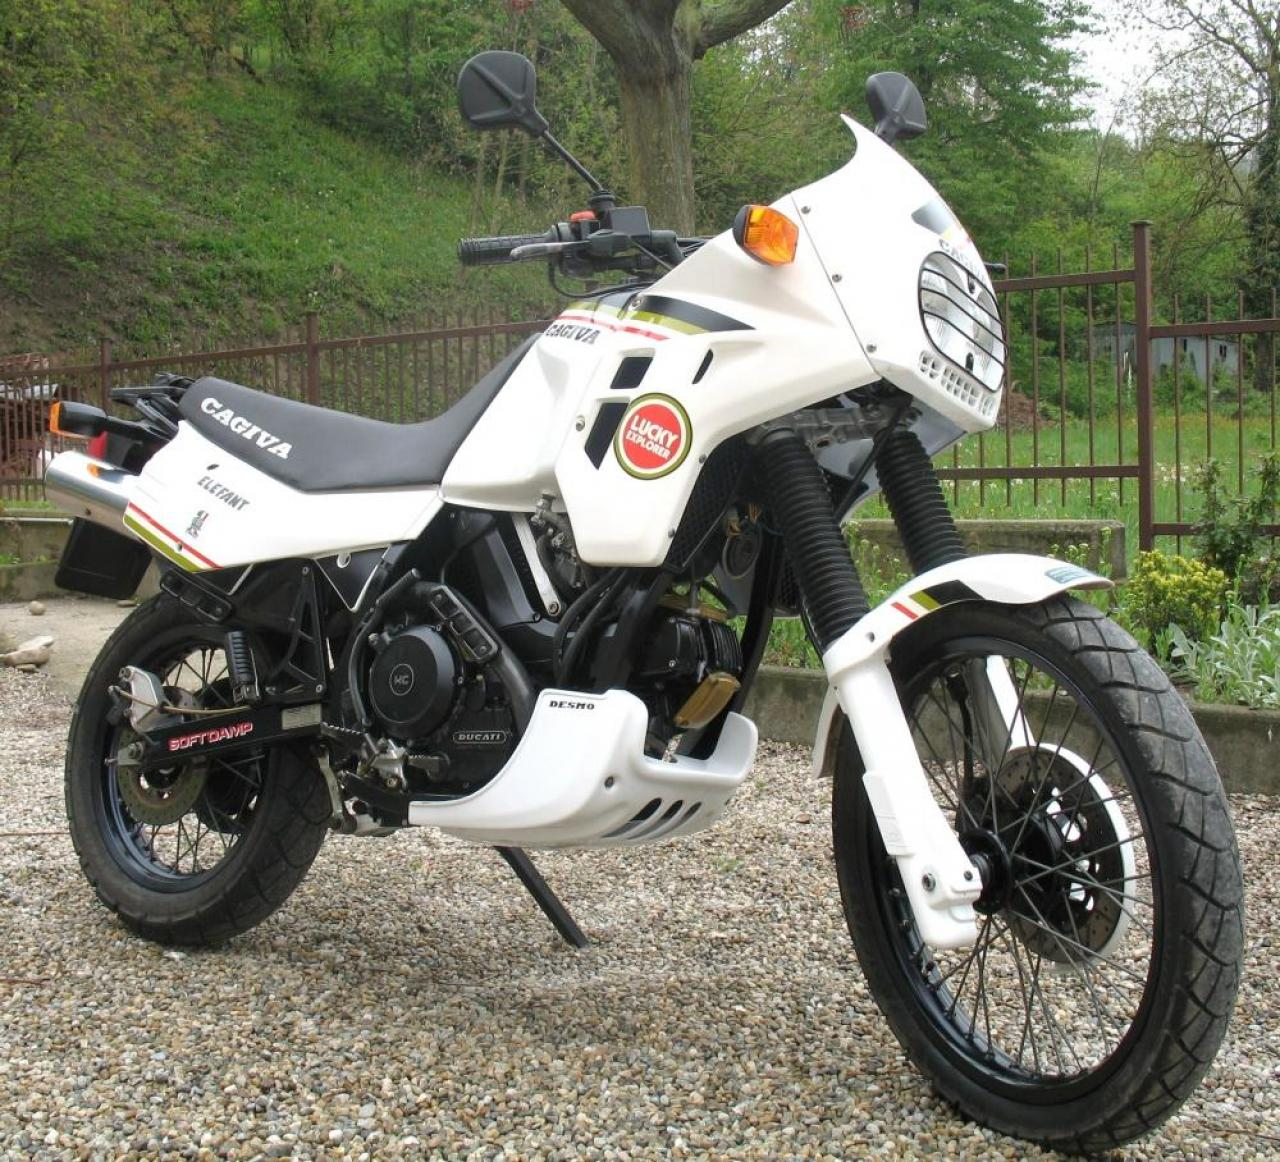 Cagiva Elefant 900 IE Lucky Strike images #69030